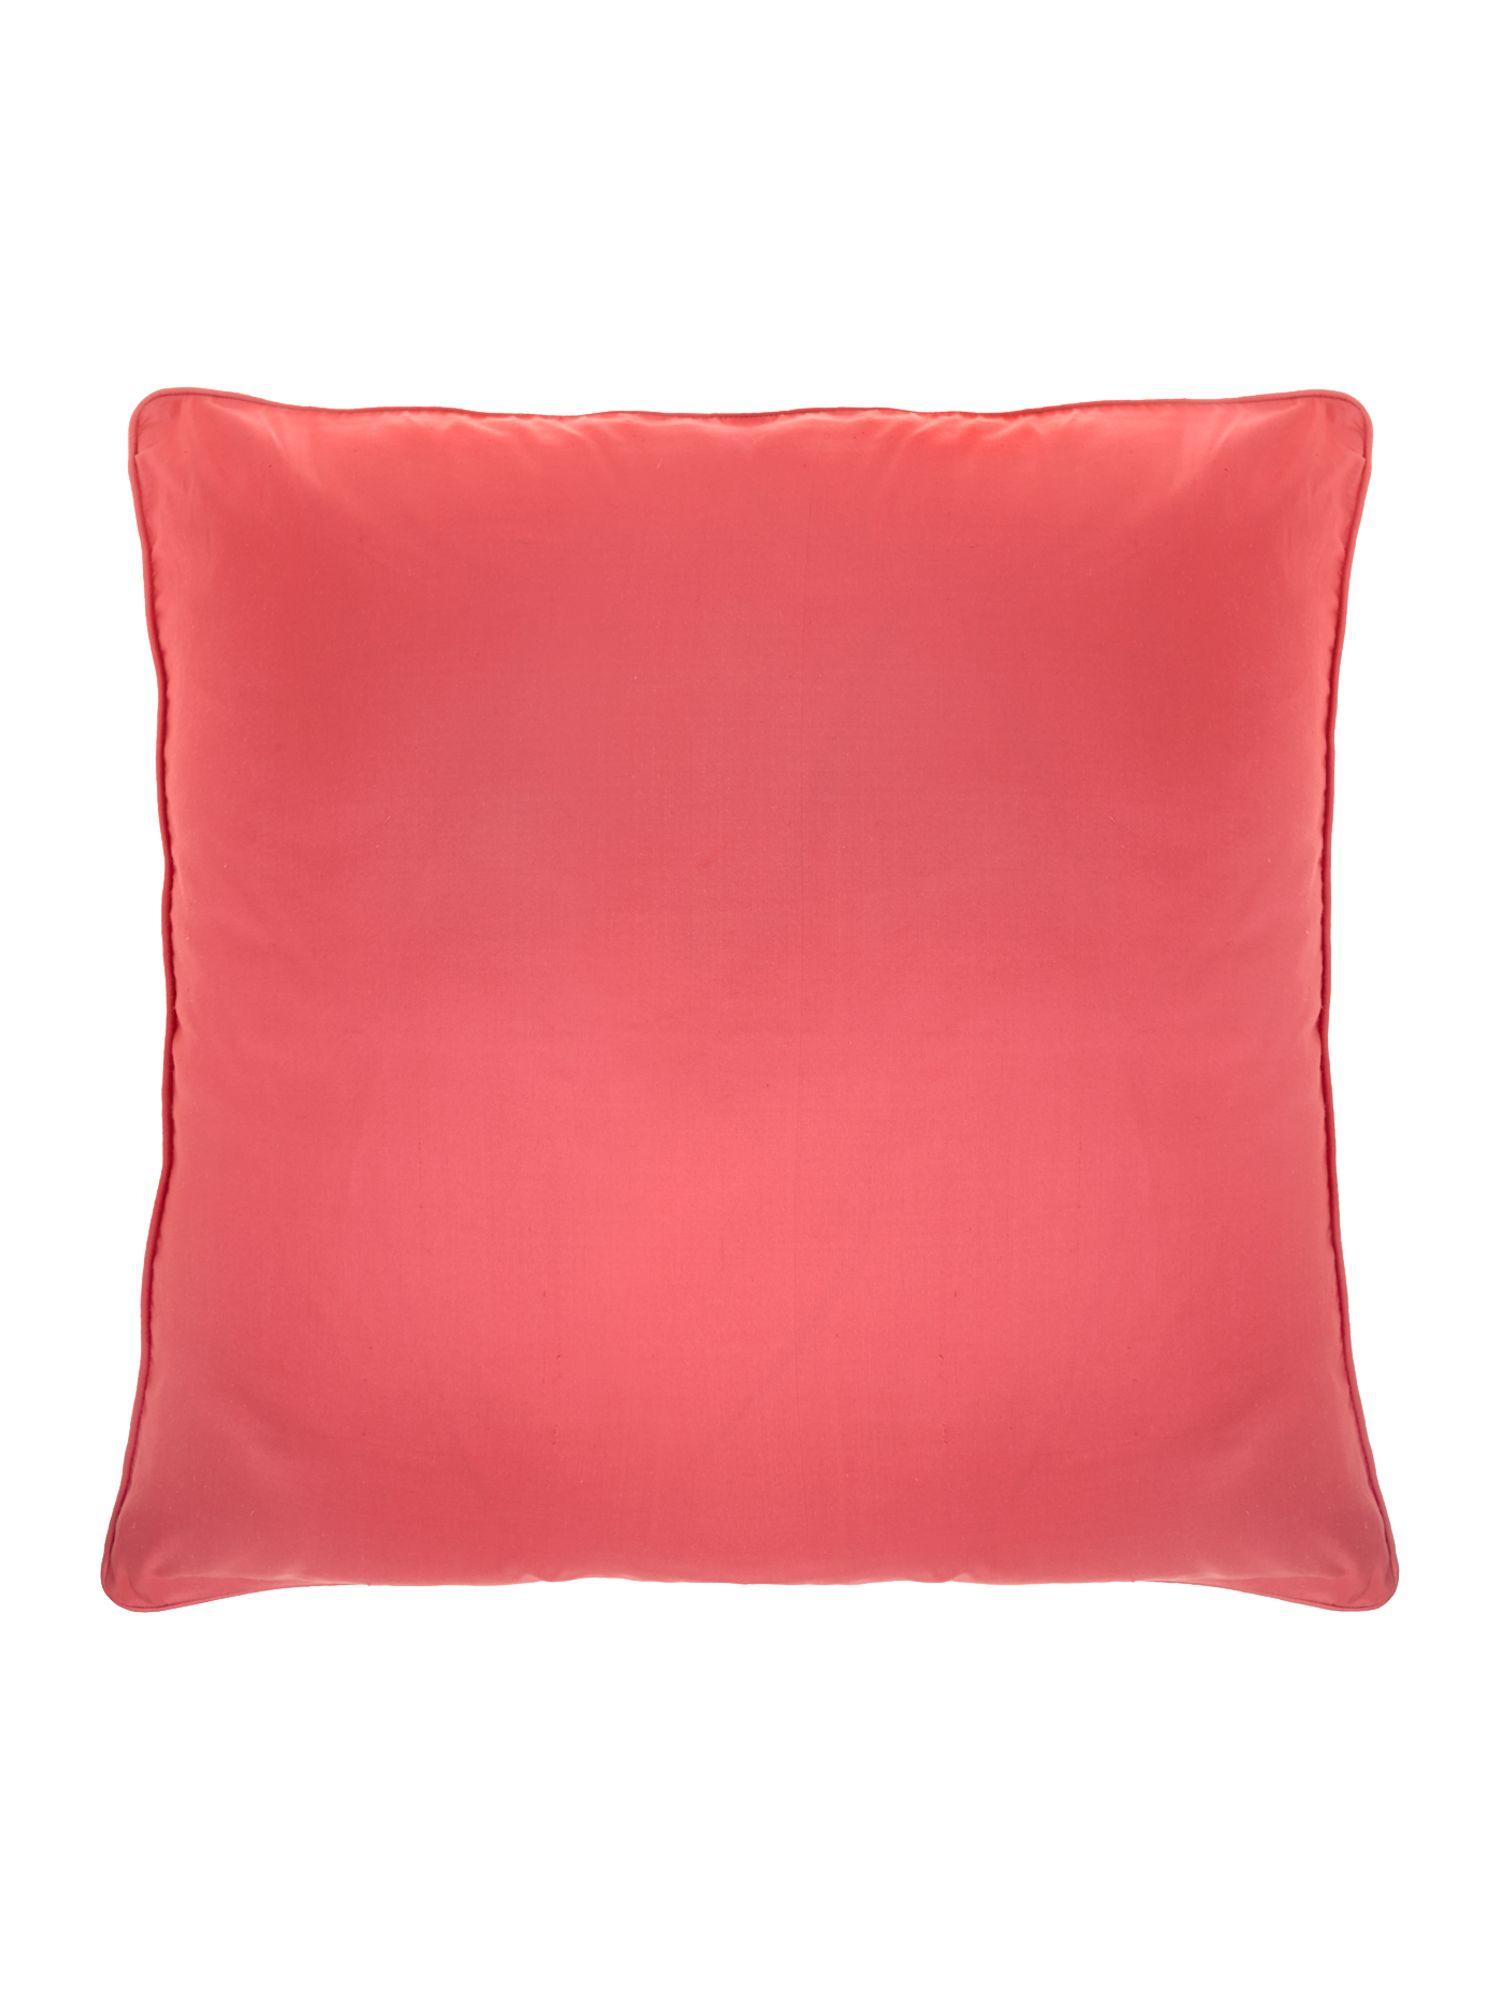 house of fraser oversized silk cushion pink. Black Bedroom Furniture Sets. Home Design Ideas